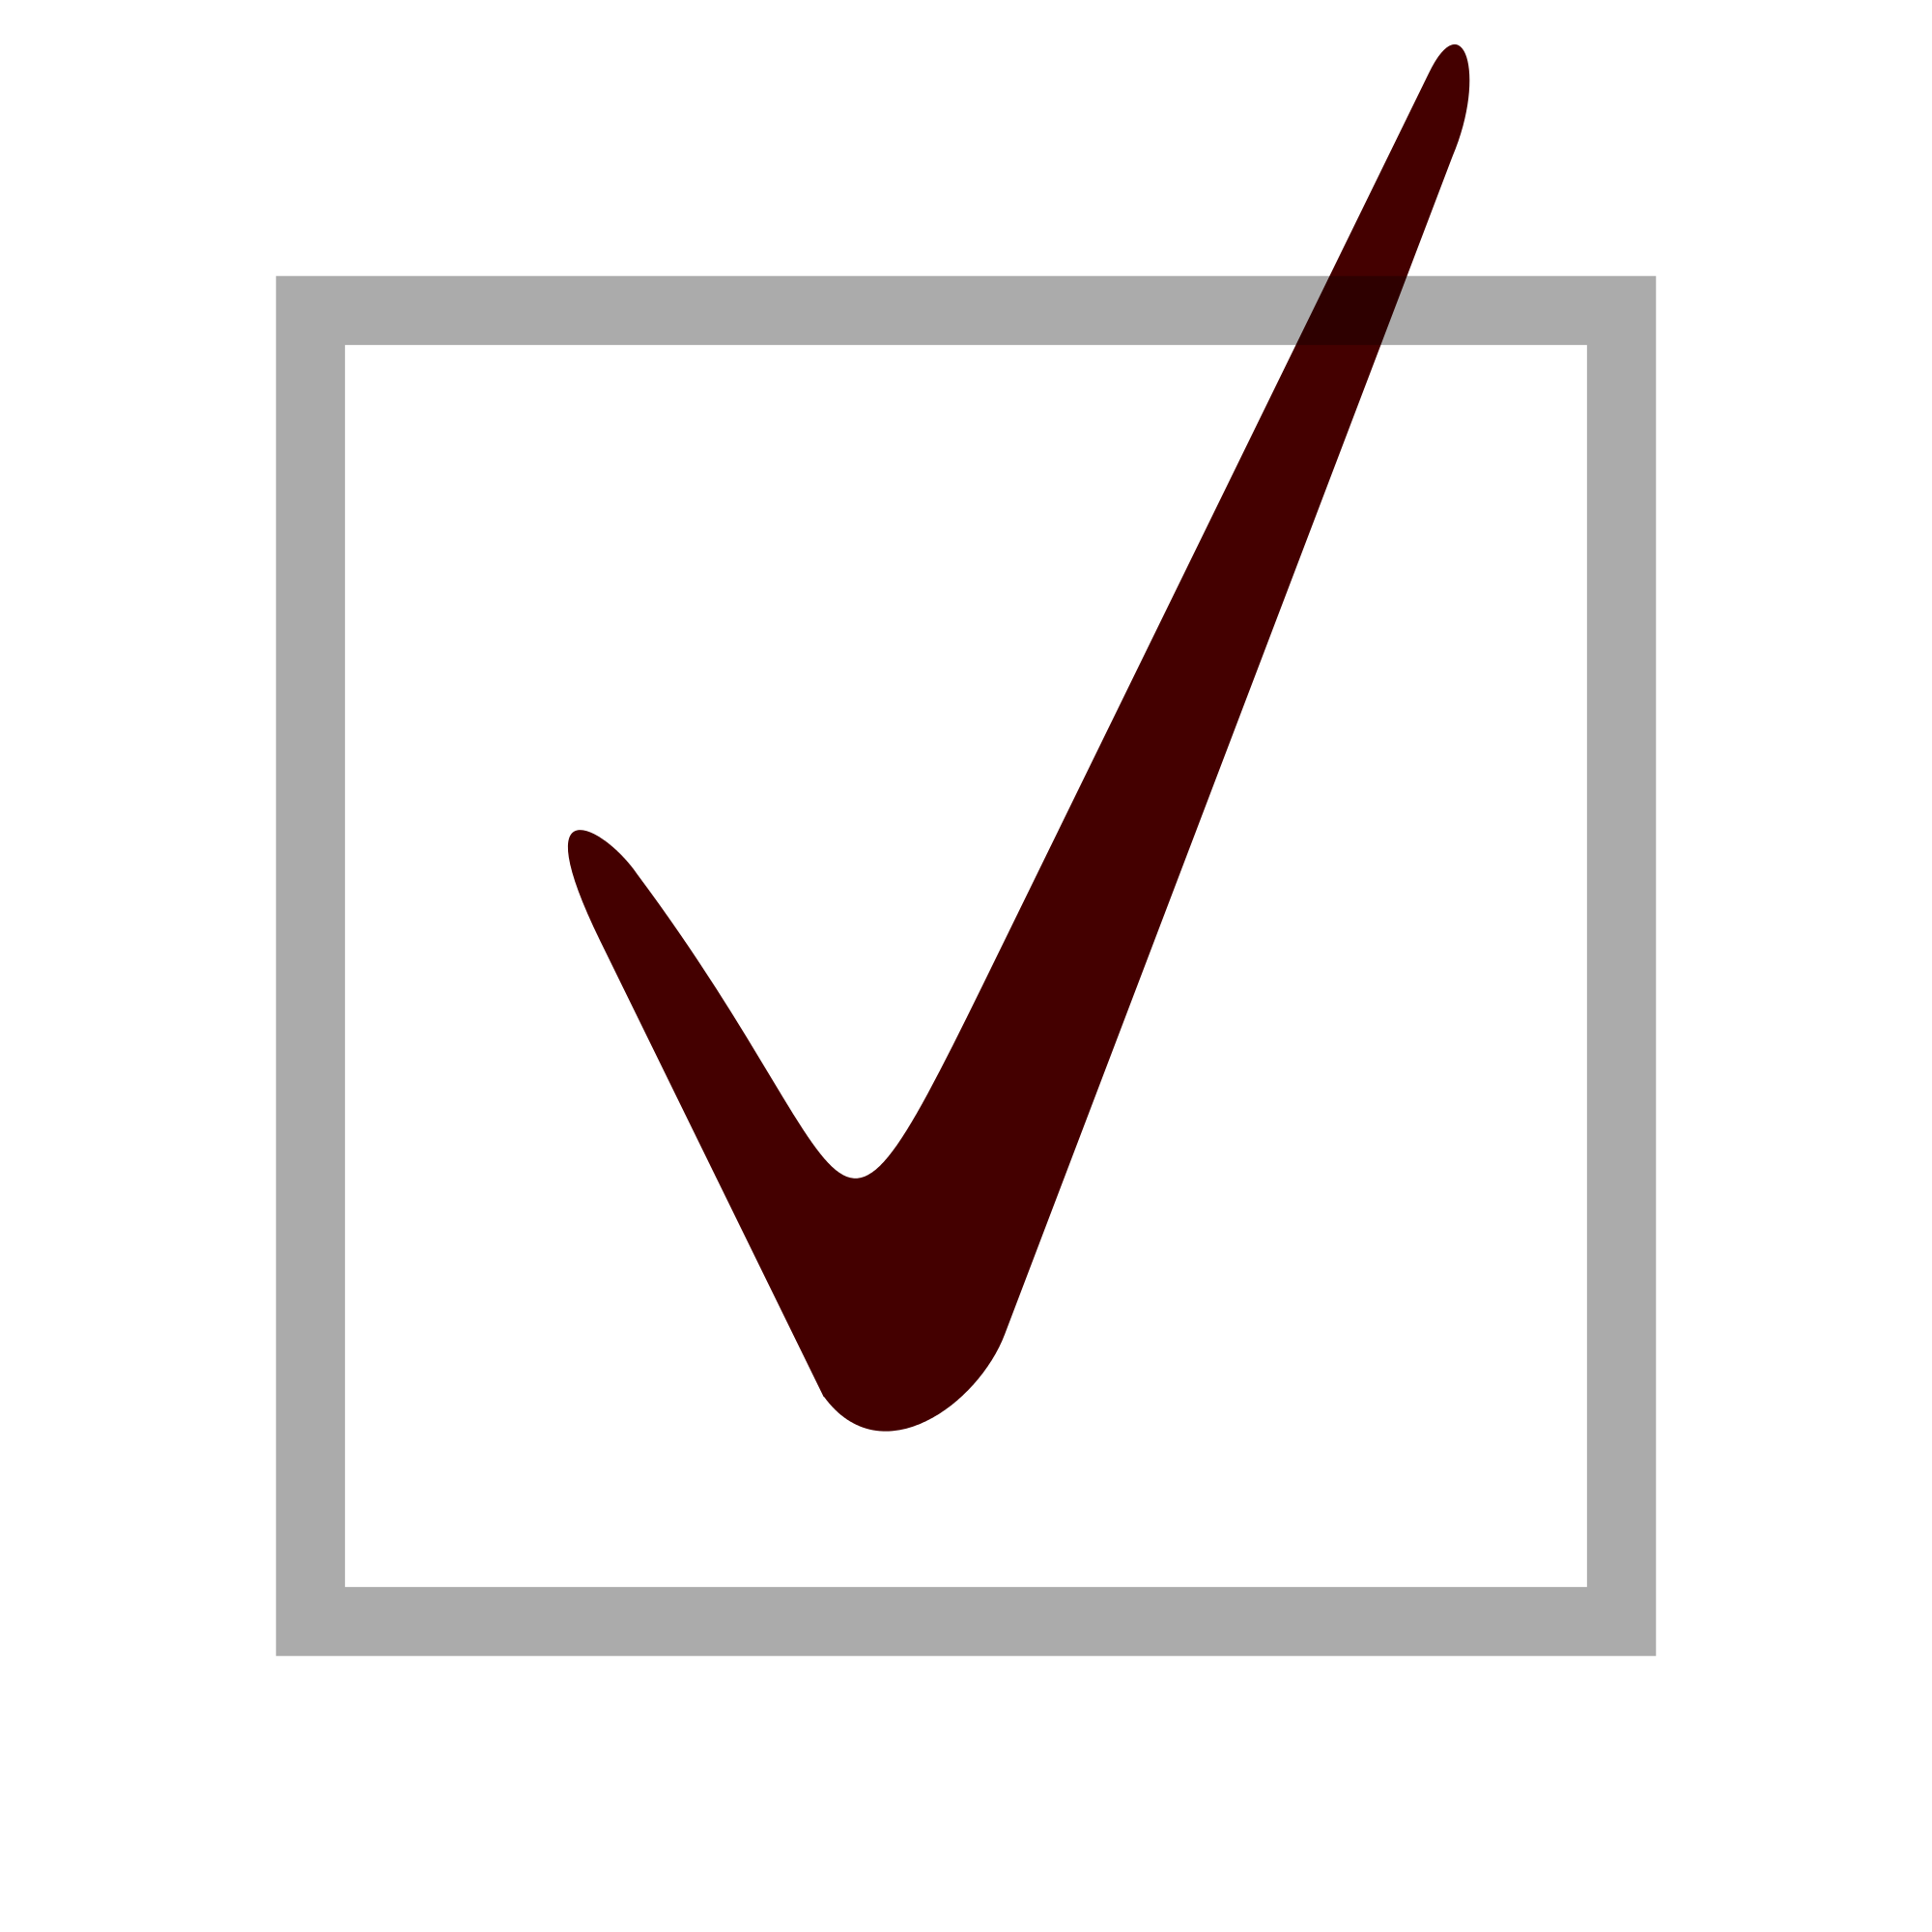 Svg checkmark tiny. File check mark wikimedia